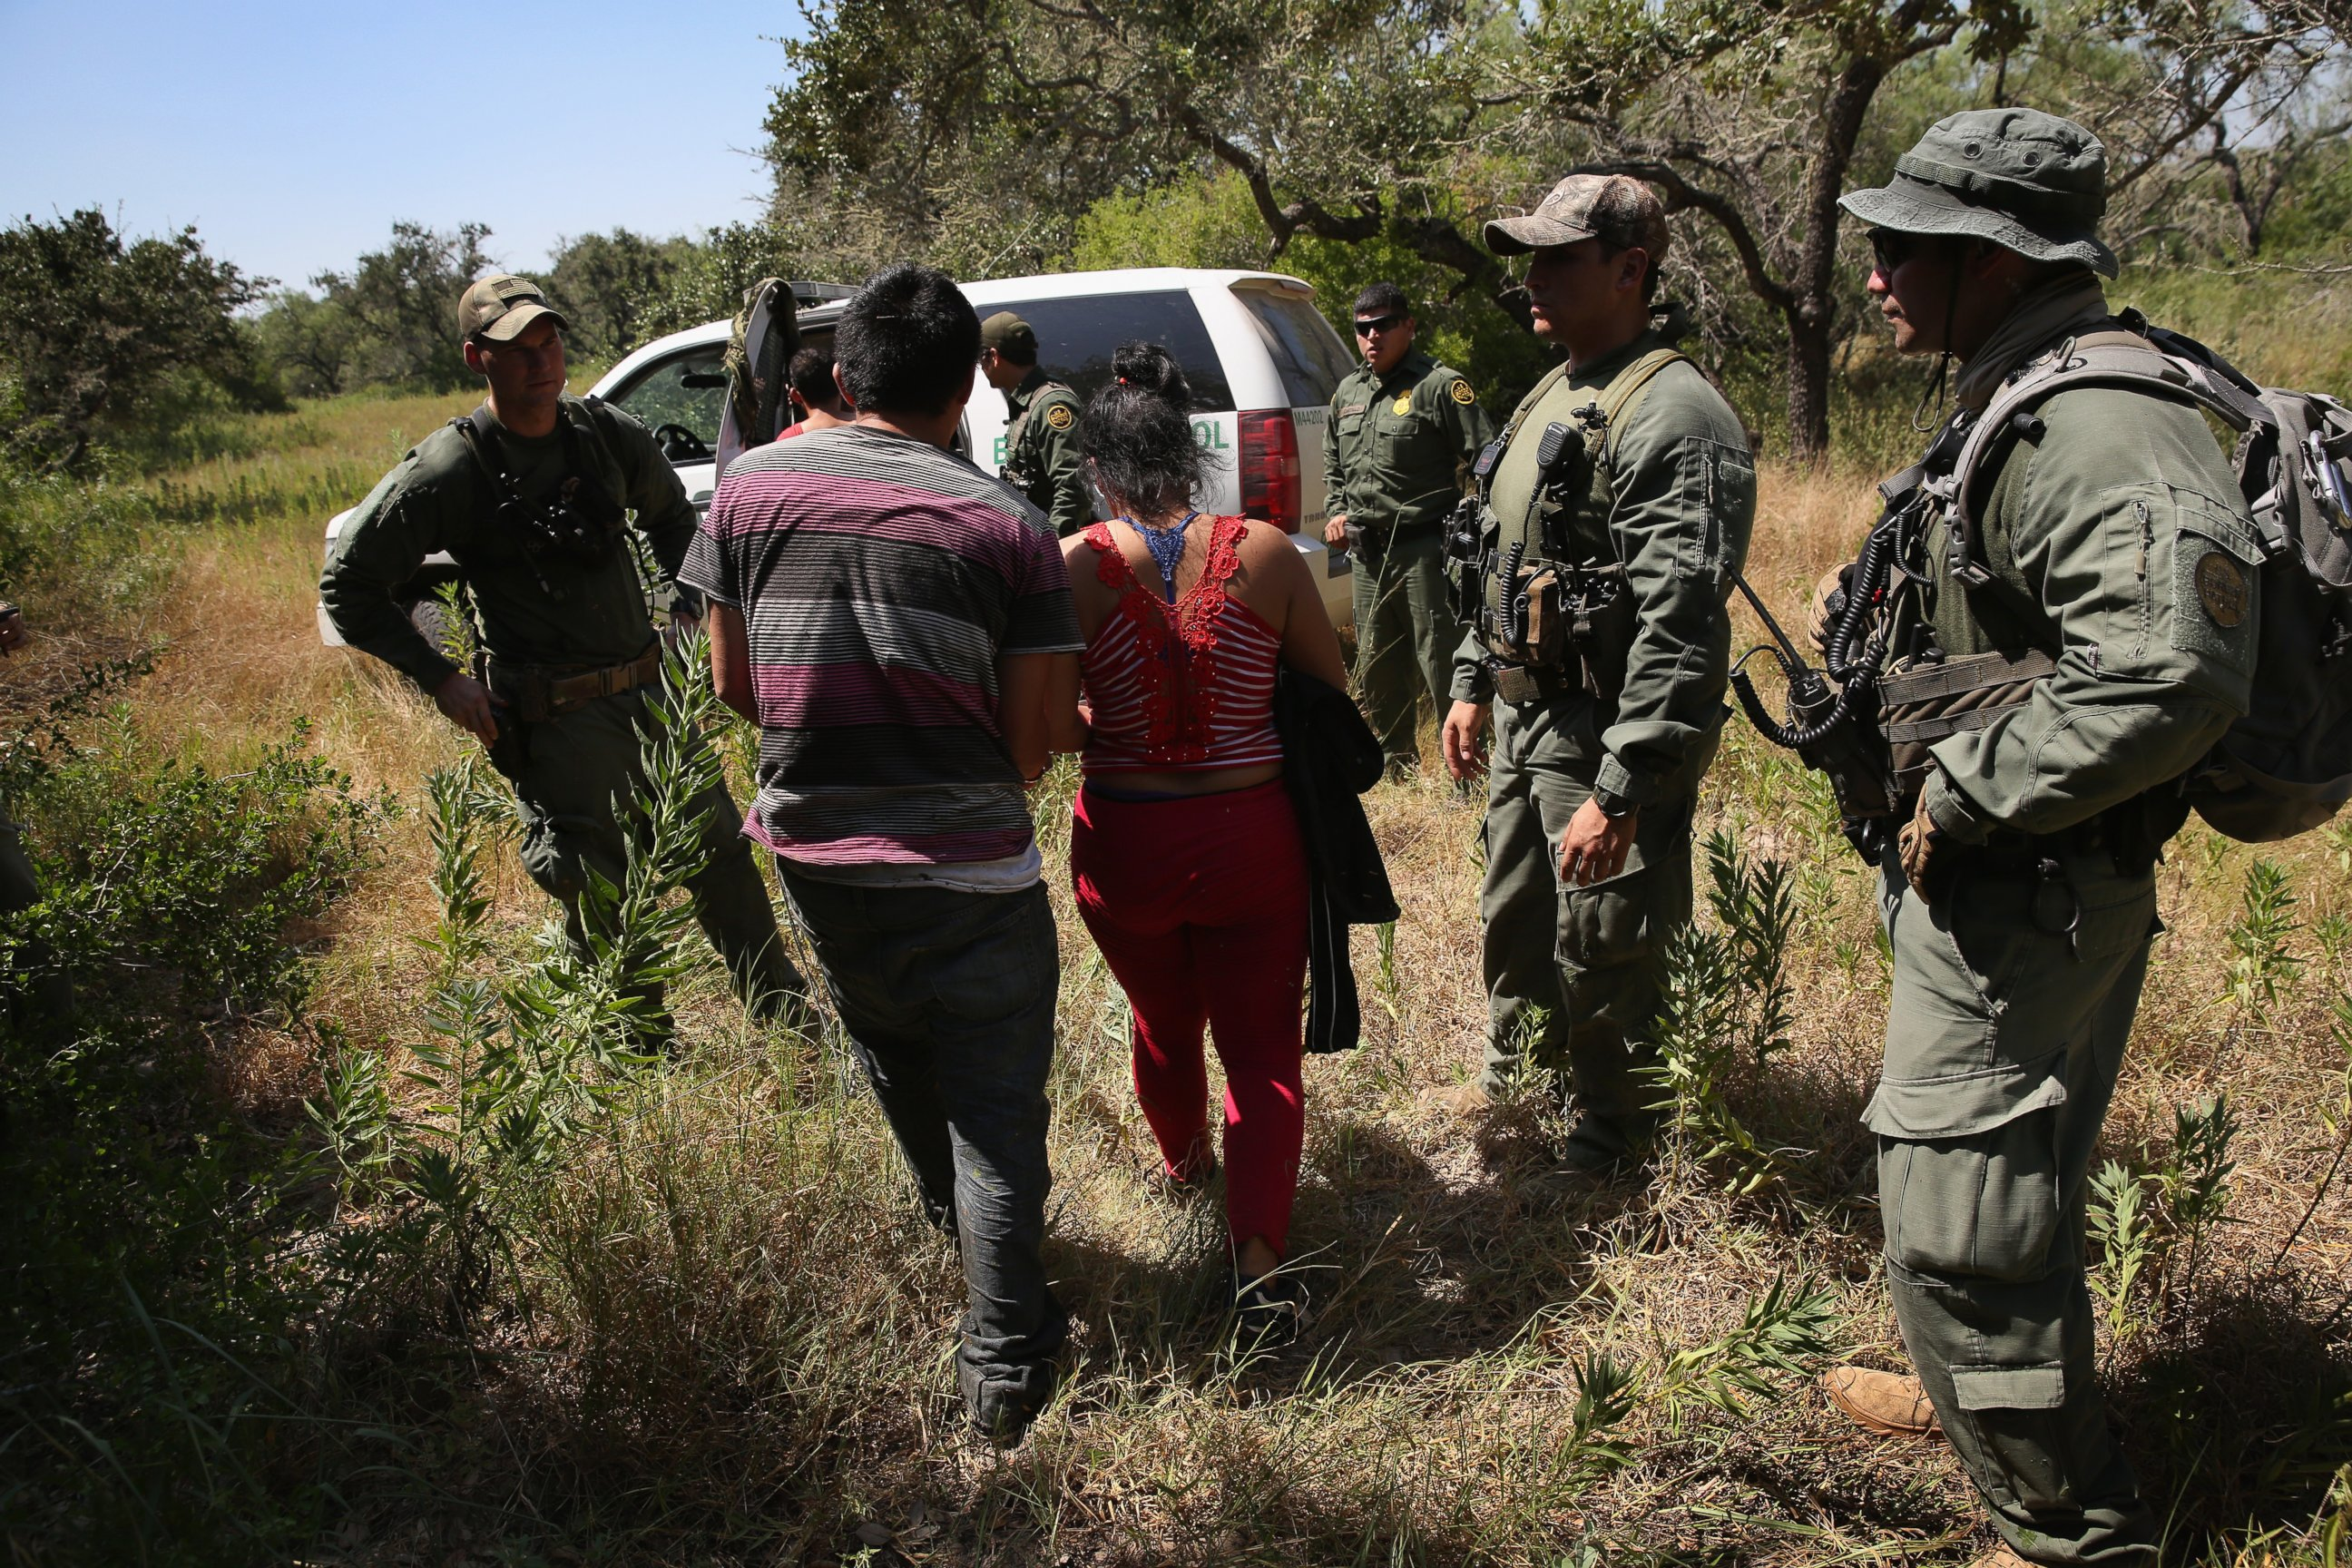 the u s border patrol The border patrol seizing nearly 300 lbs of pot near mcallen, texas heavy load now's your chance to drive trucks full of weed around for the us border patrol by justin rohrlich october 25, 2018.